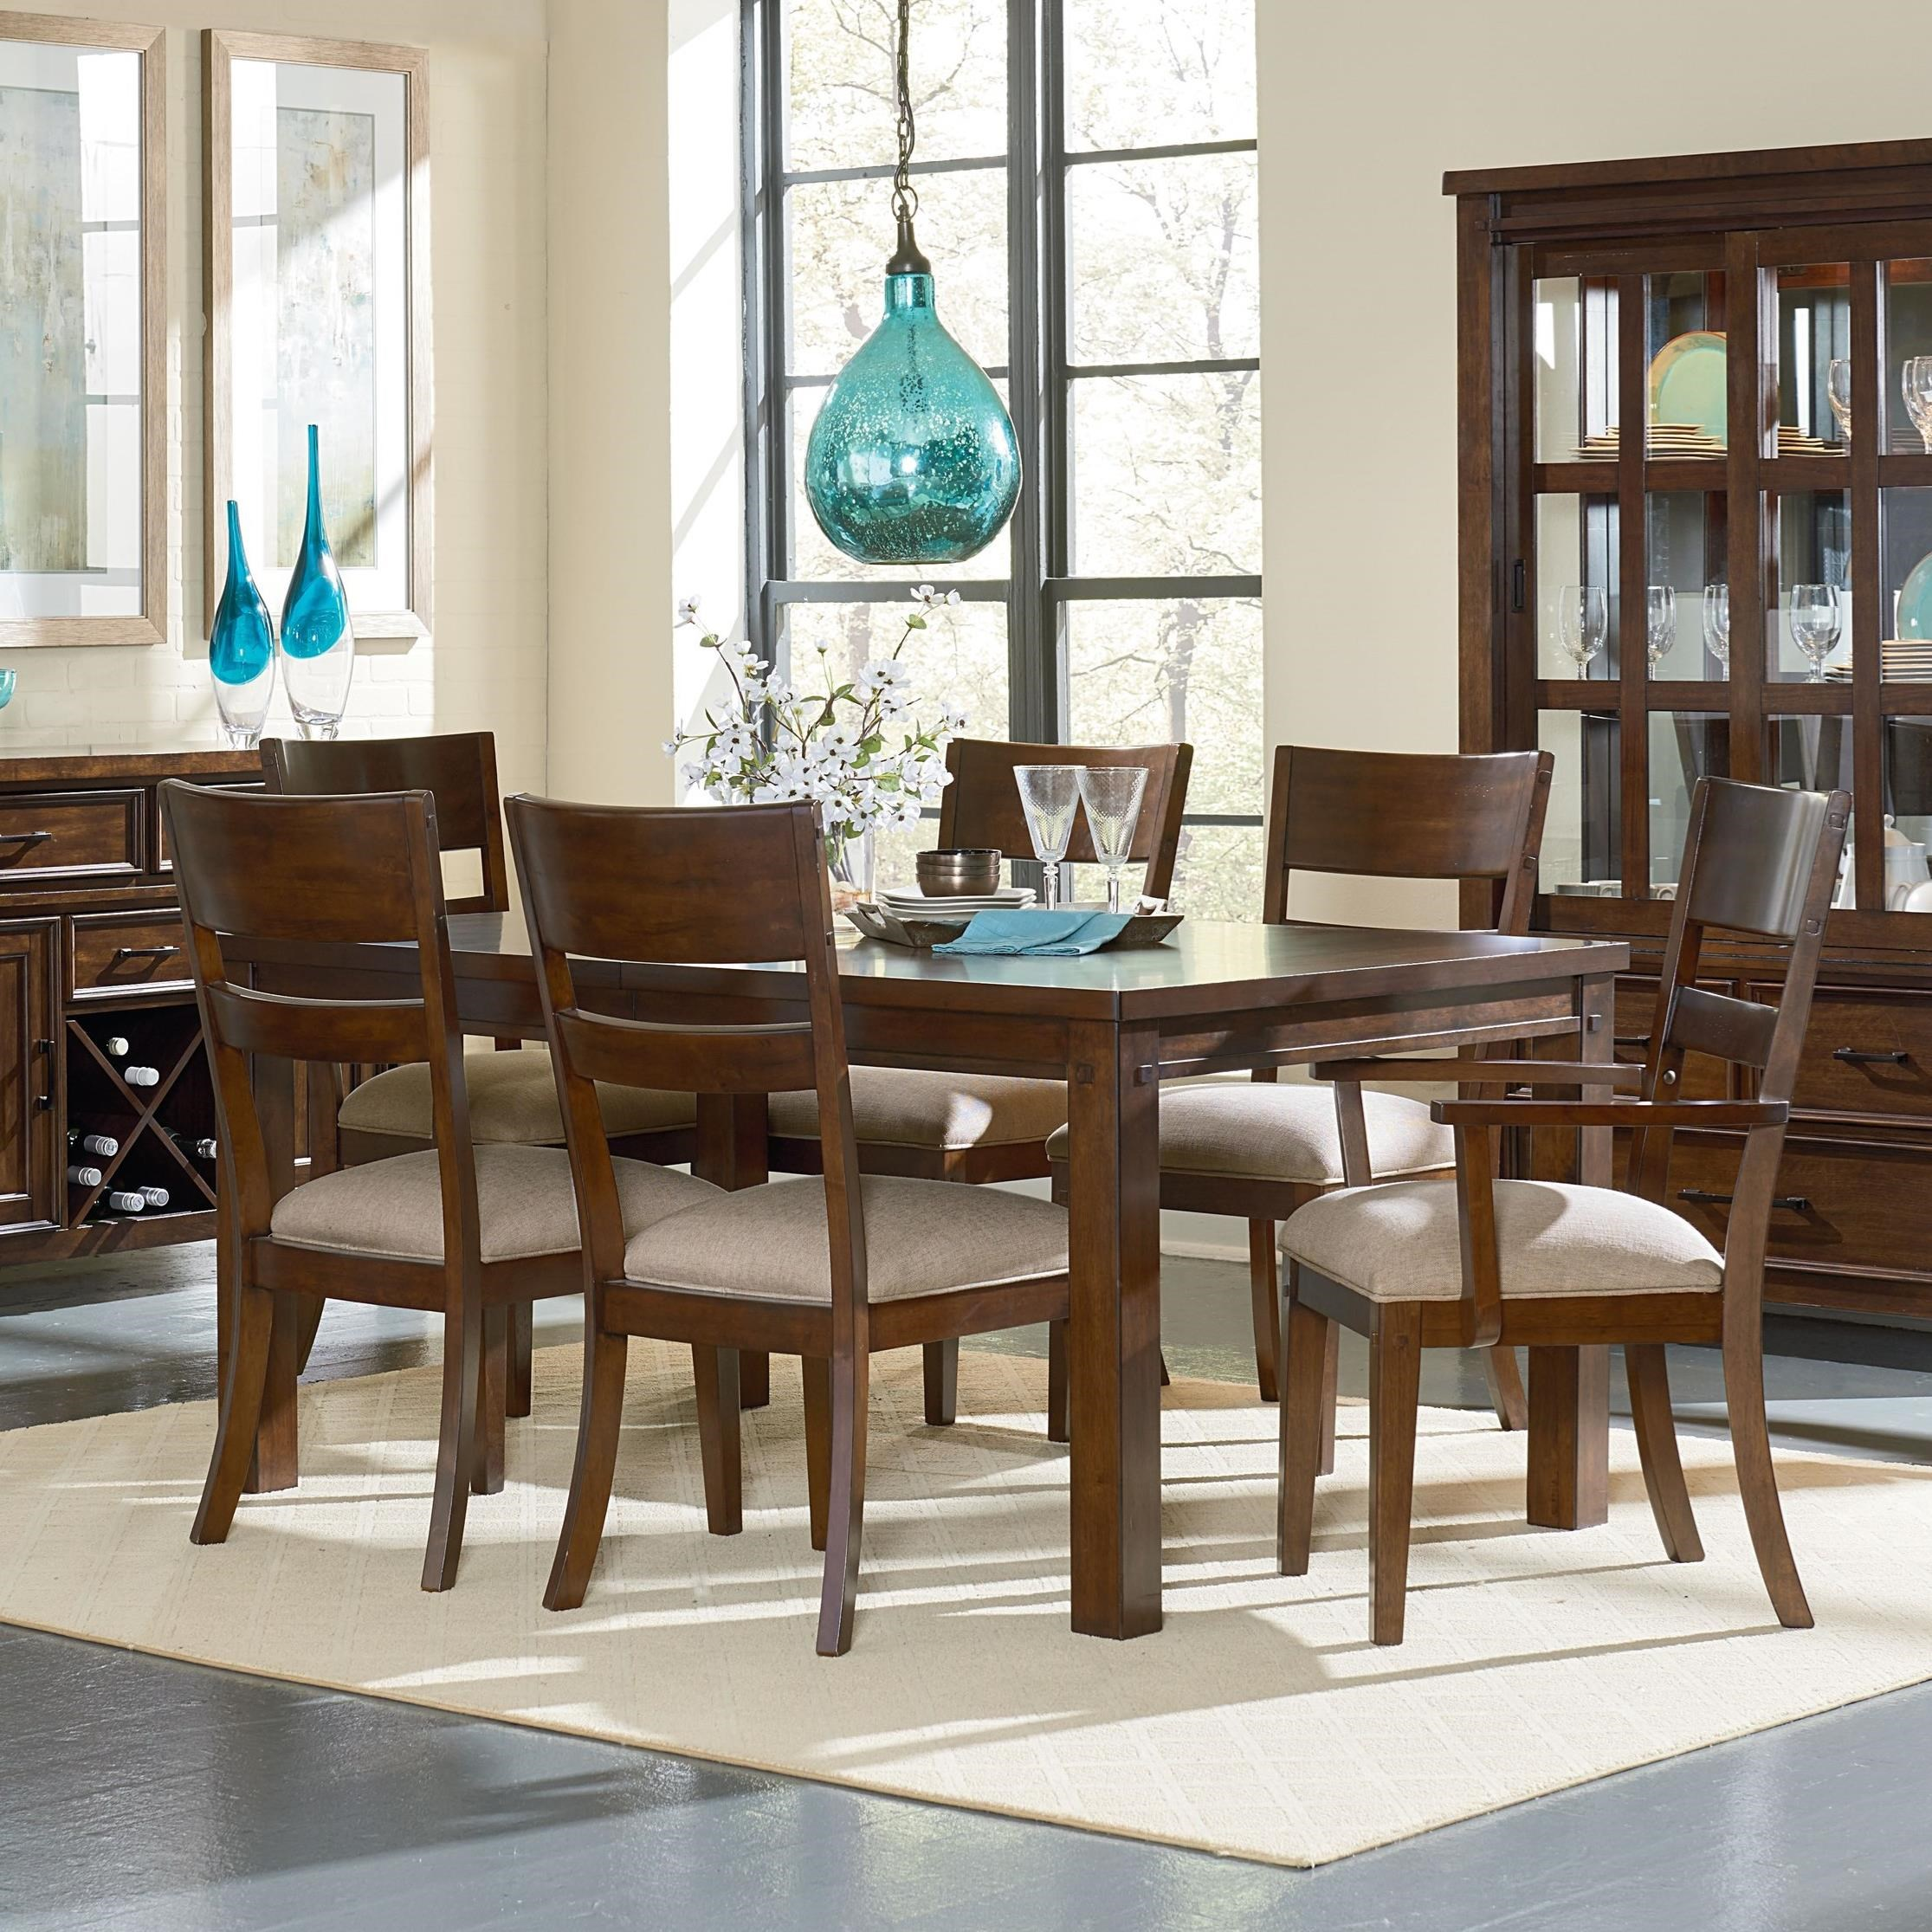 Standard Furniture Cameron Table and Chair Set - Item Number: 14301+14305+2x14304